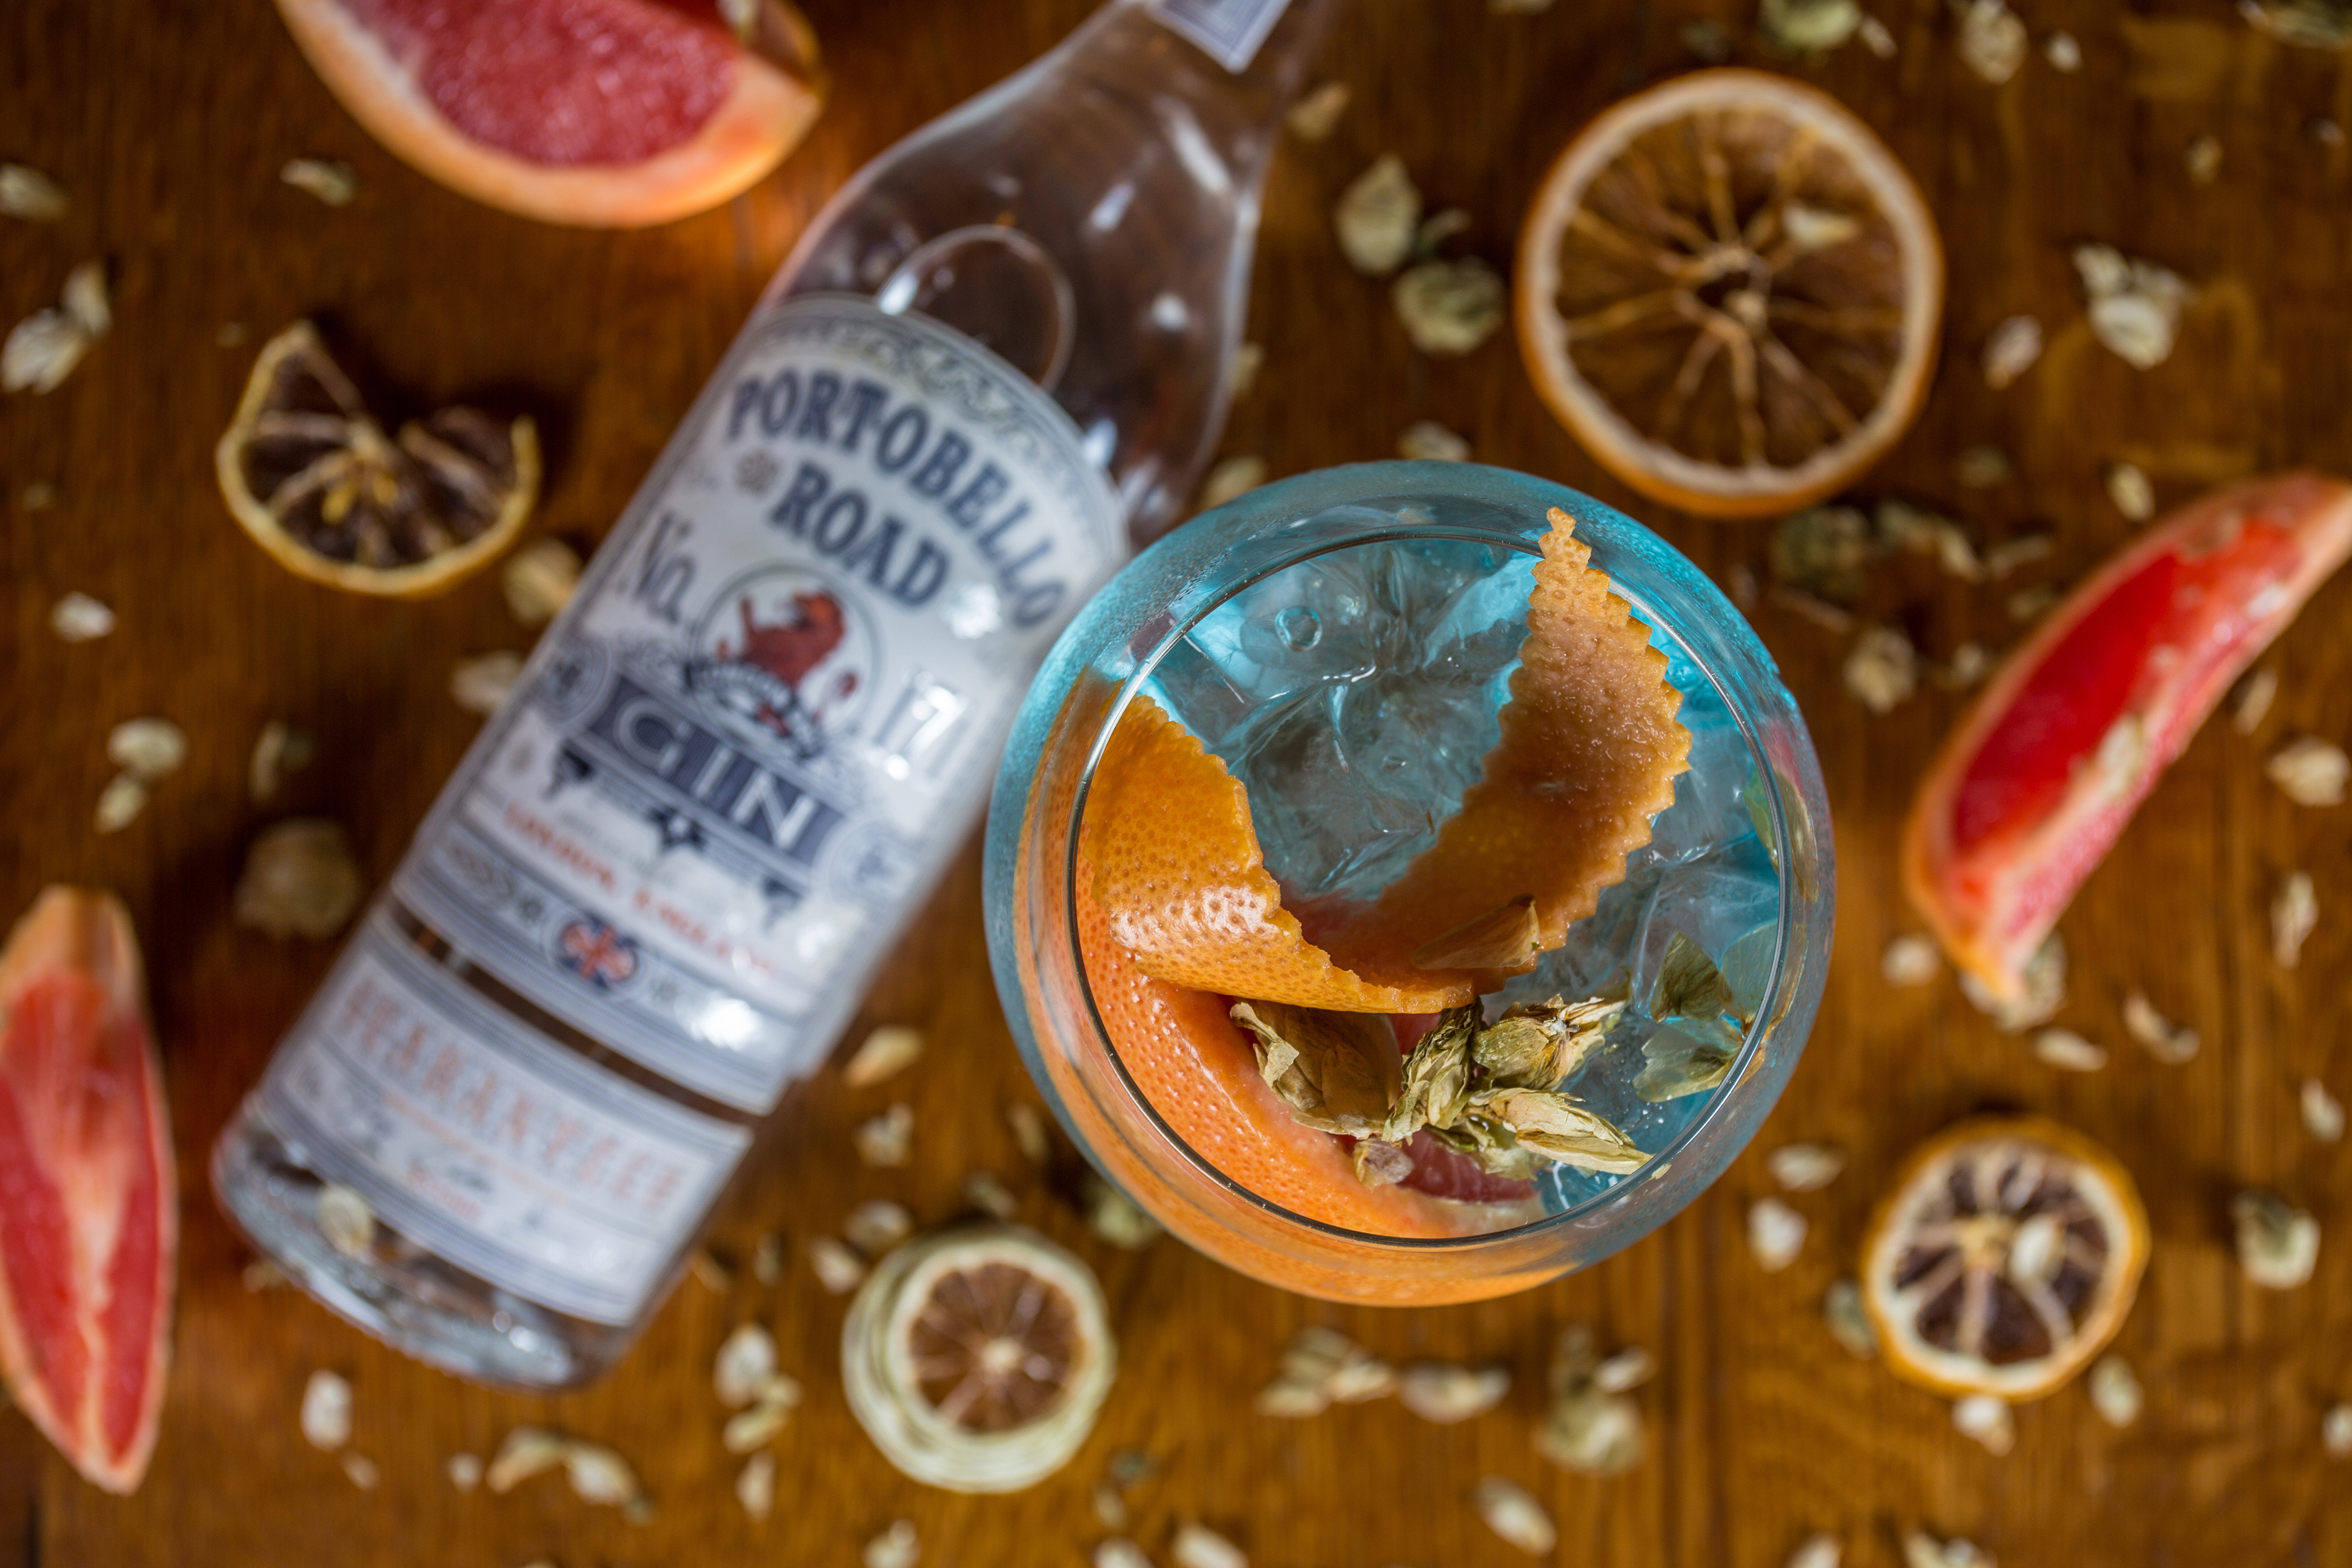 cocktail image with portobello gin and dehydrated orange